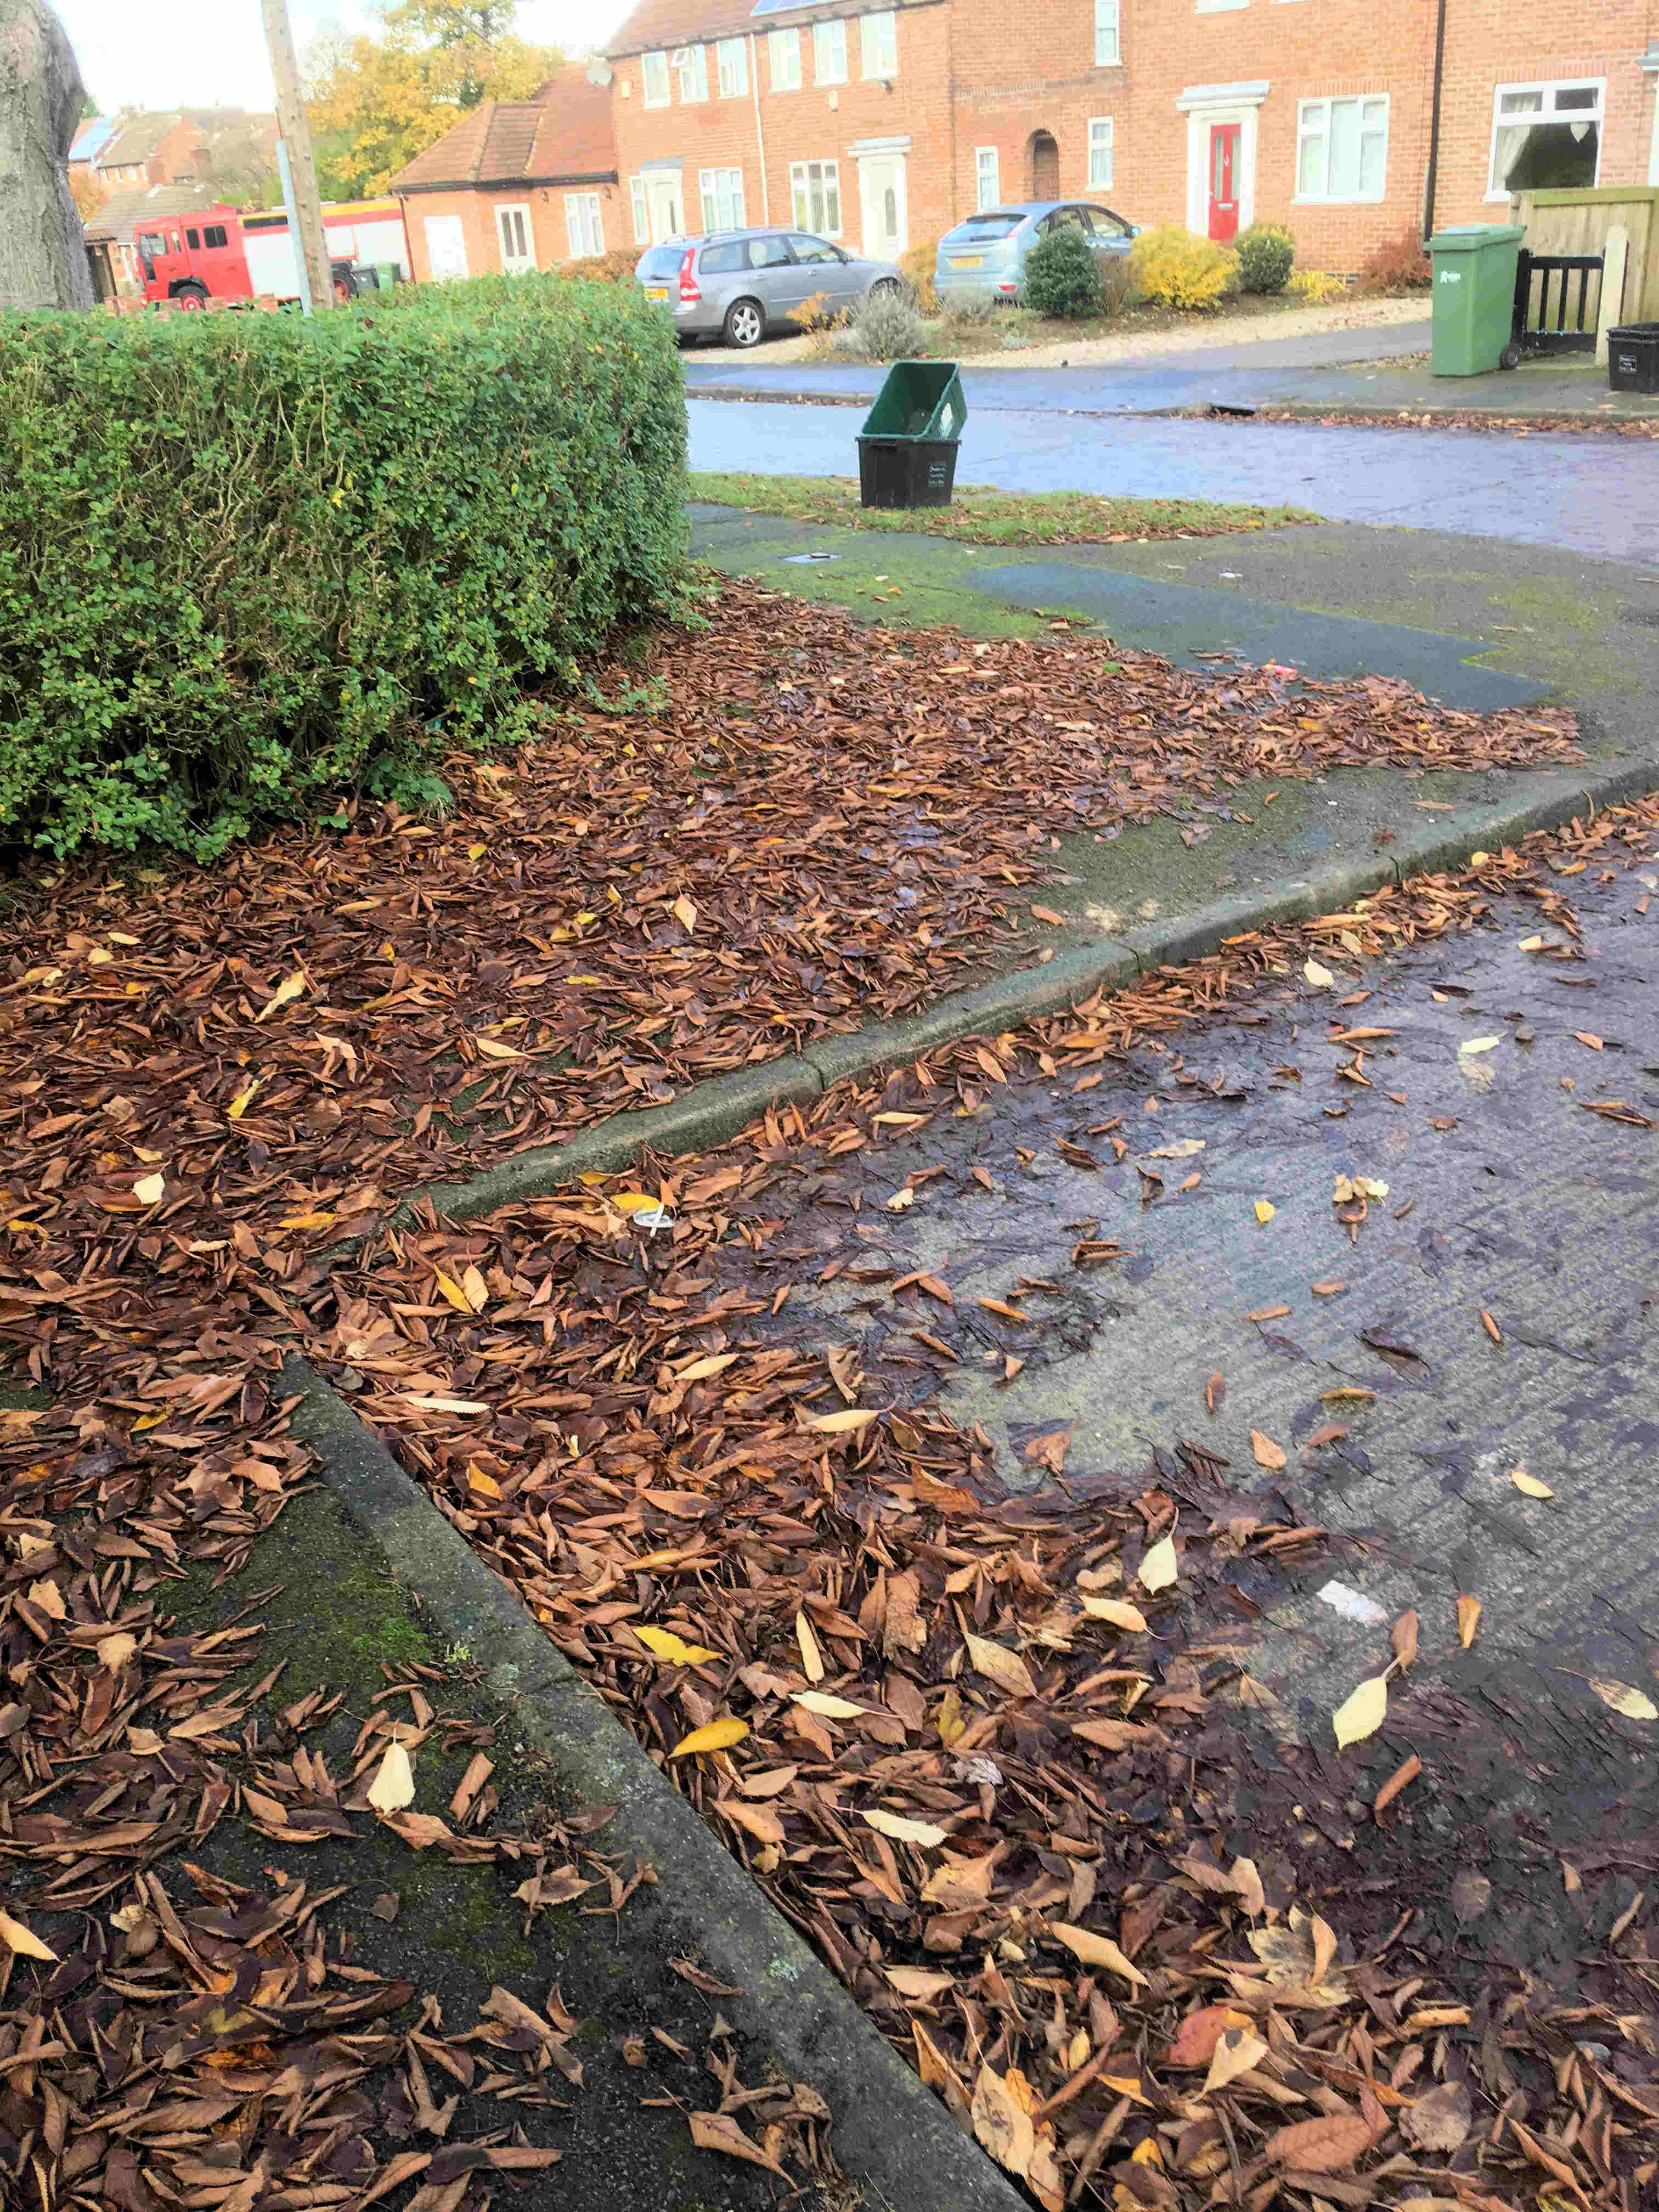 Councillors were out and about reporting issues for attention. These included leaf fall in Rylatt Place